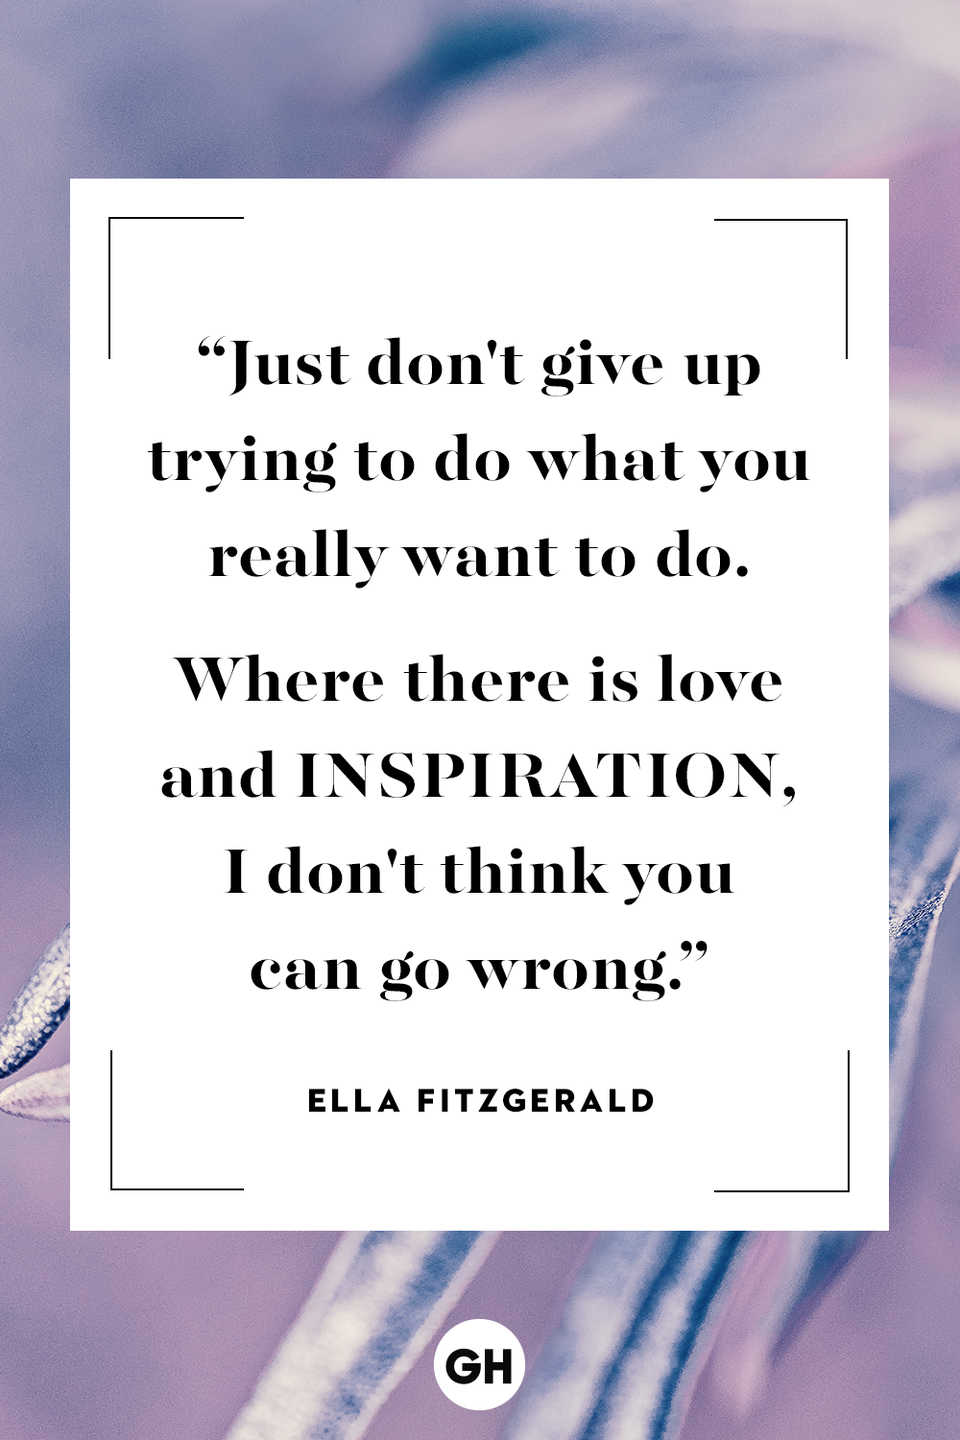 """<p>Just don't give up trying to do what you really want to do. Where there is love and inspiration, I don't think you can go wrong.</p><p><strong>RELATED: </strong><a href=""""https://www.goodhousekeeping.com/life/relationships/g3721/quotes-about-love/"""" rel=""""nofollow noopener"""" target=""""_blank"""" data-ylk=""""slk:Love Quotes That Will Melt Your Heart"""" class=""""link rapid-noclick-resp"""">Love Quotes That Will Melt Your Heart</a></p>"""